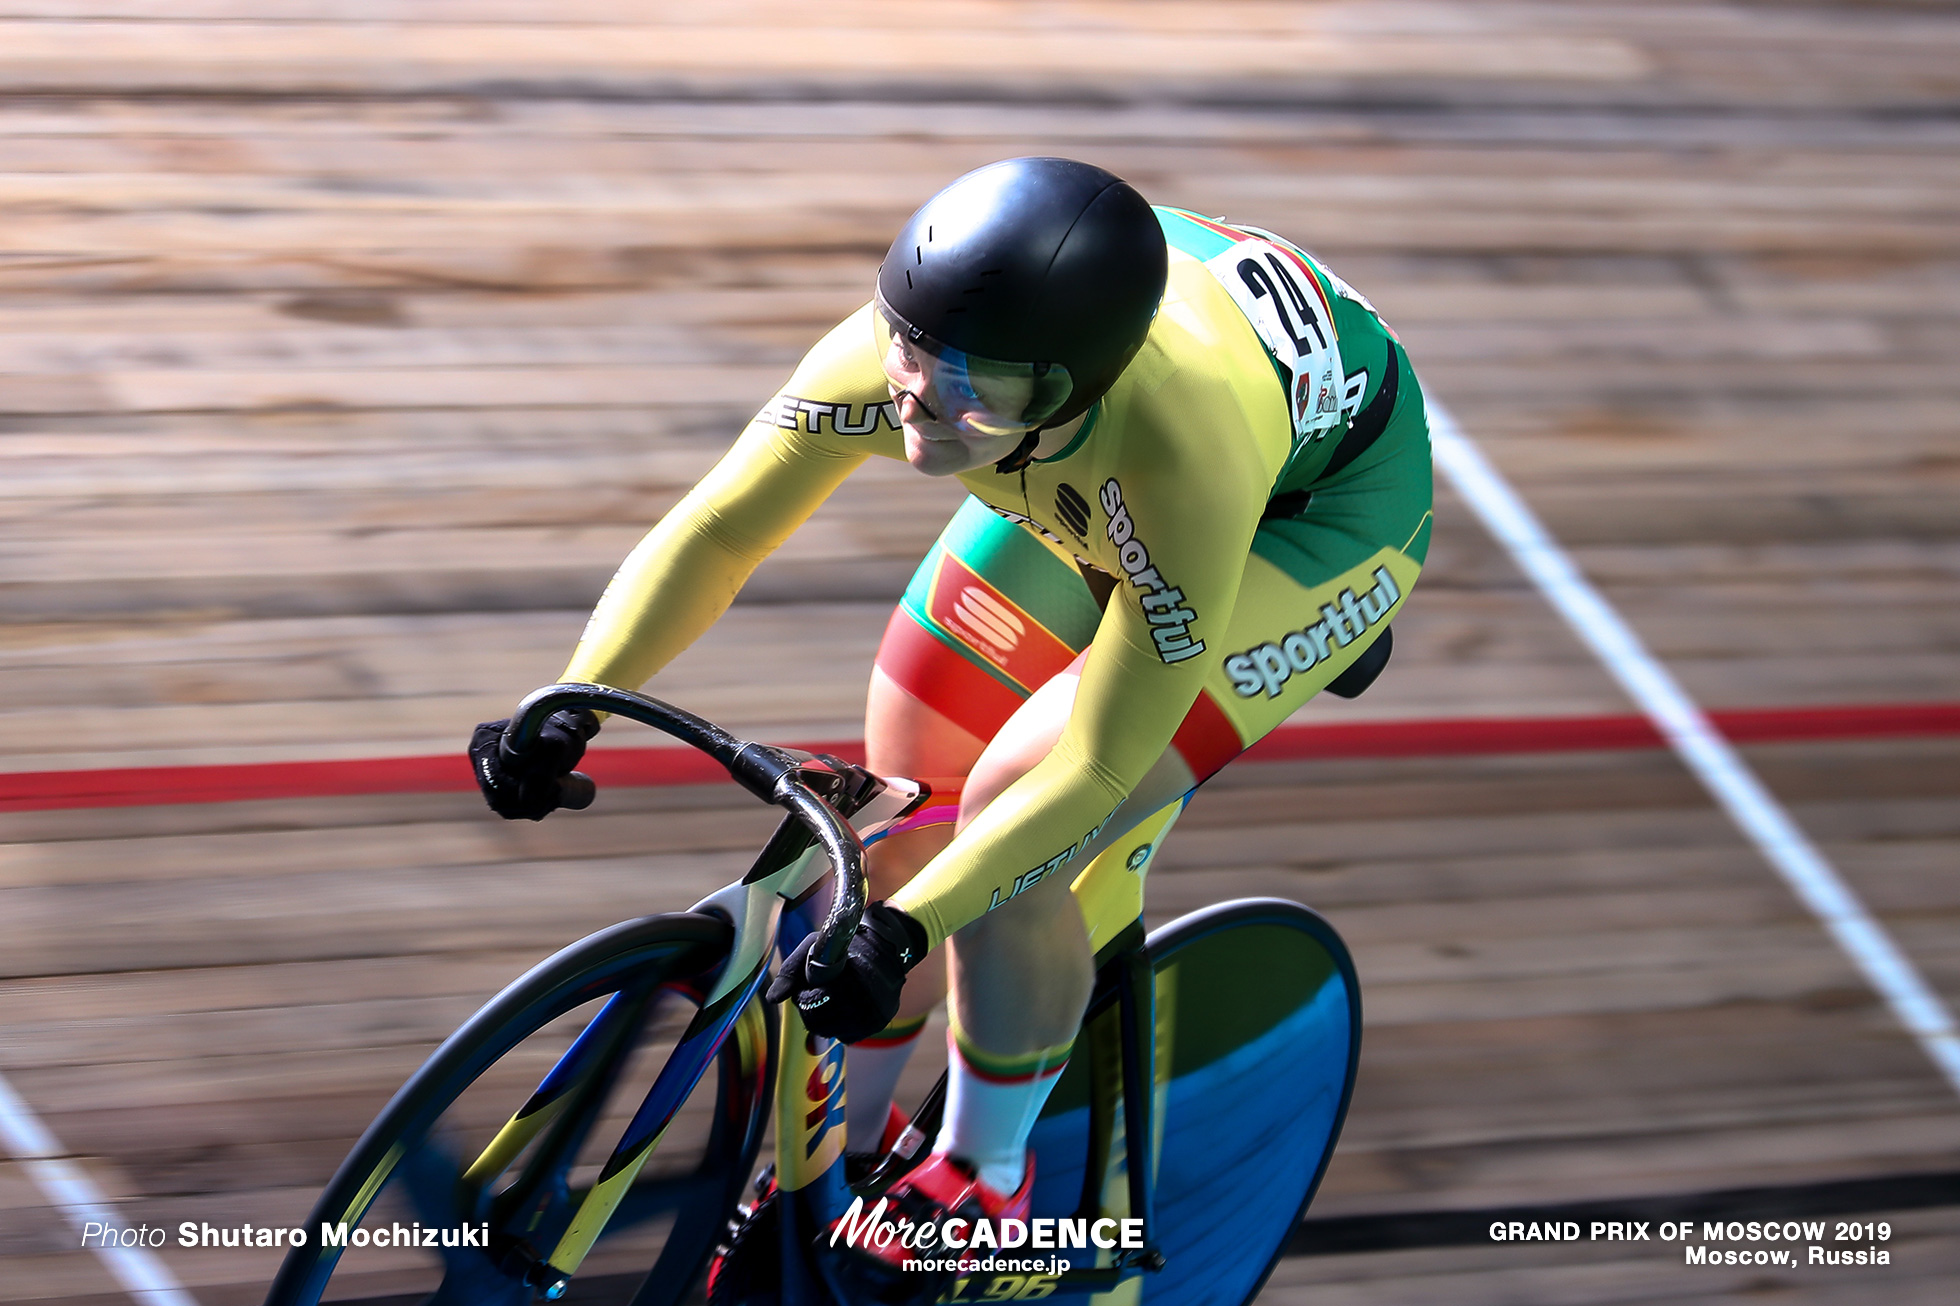 1st Round / Women's Sprint / GRAND PRIX OF MOSCOW 2019